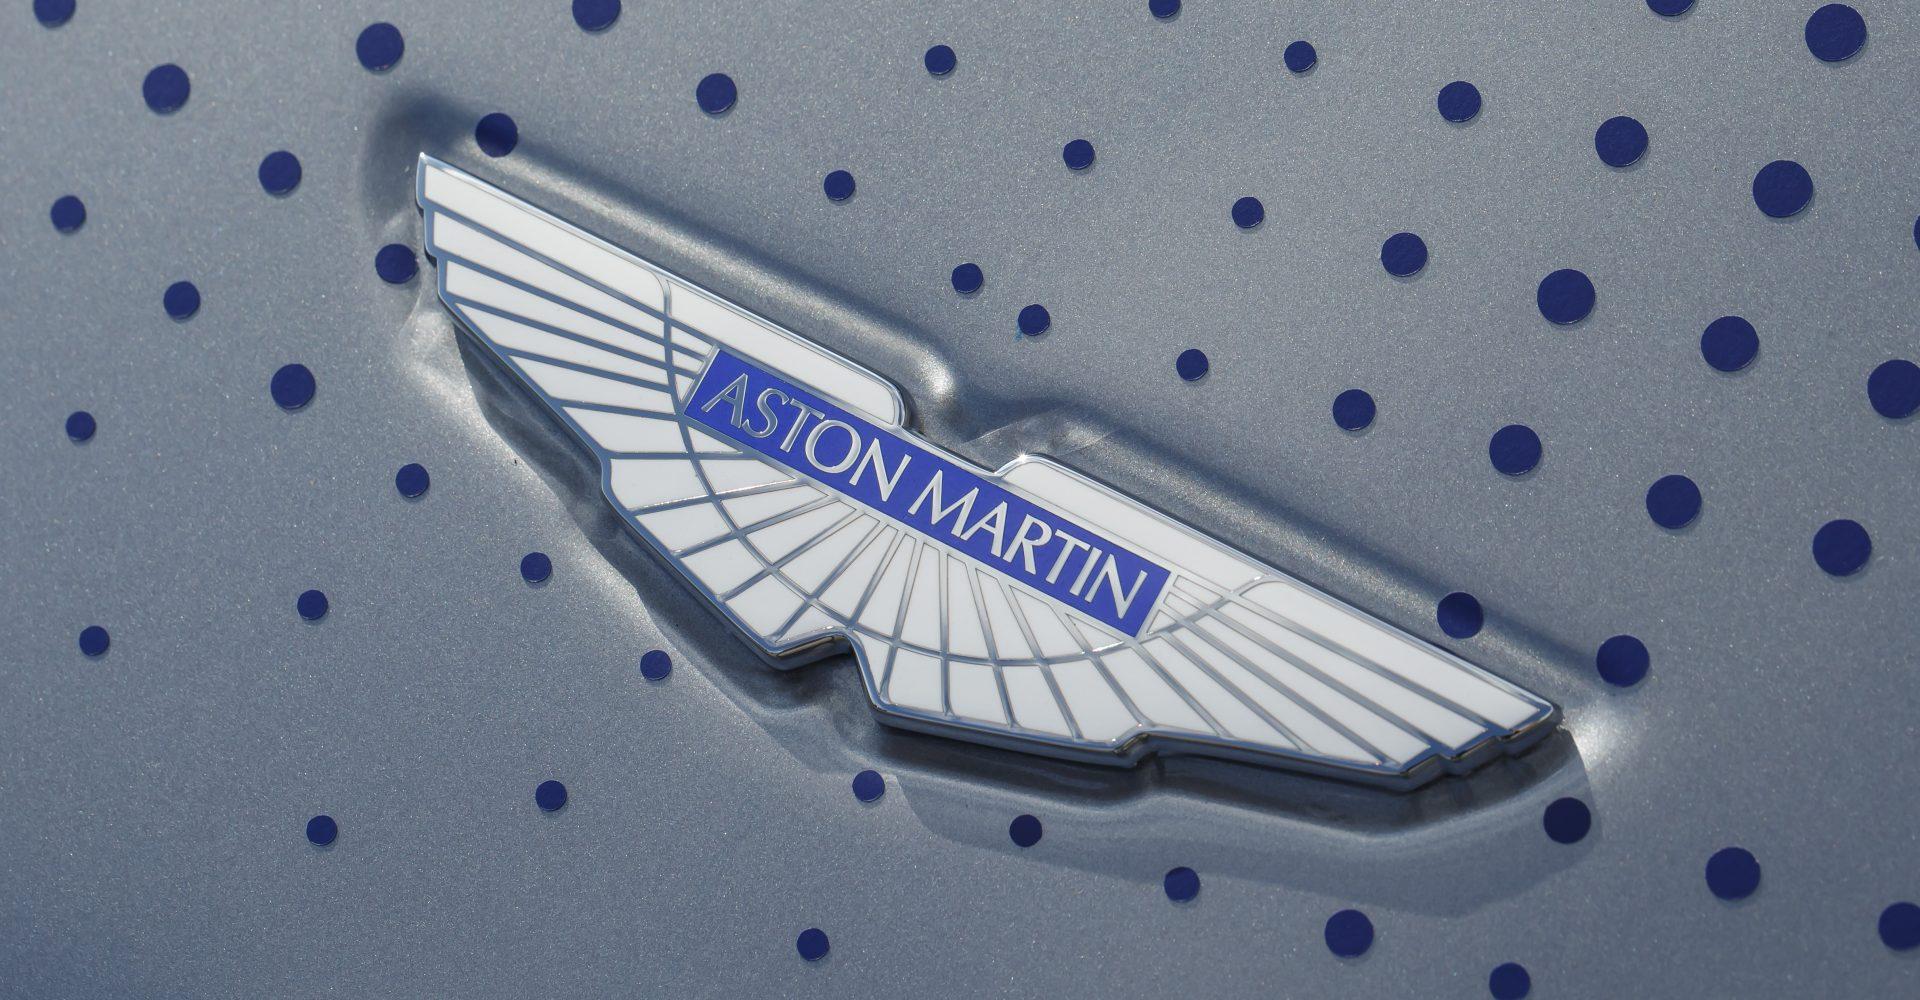 Aston Martin to offer hybrid models by mid-2020s